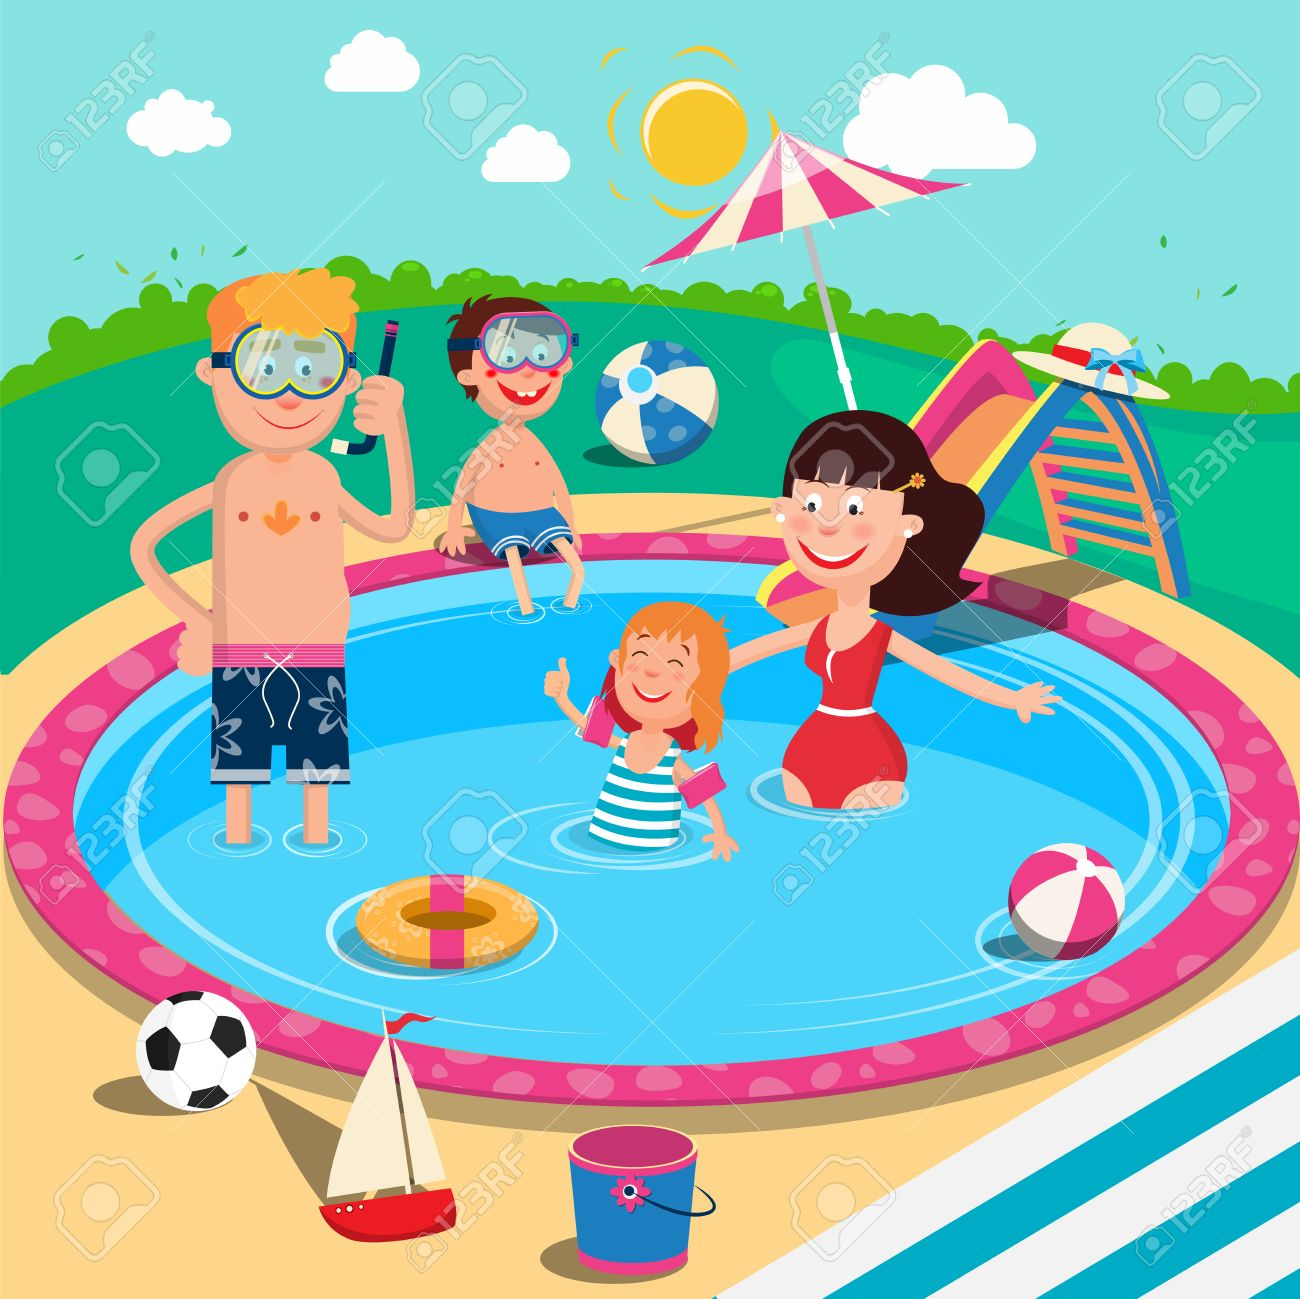 Swimming in the pool clipart picture stock Swimming Pool Clipart 8 - 1300 X 1299 - Making-The-Web.com picture stock